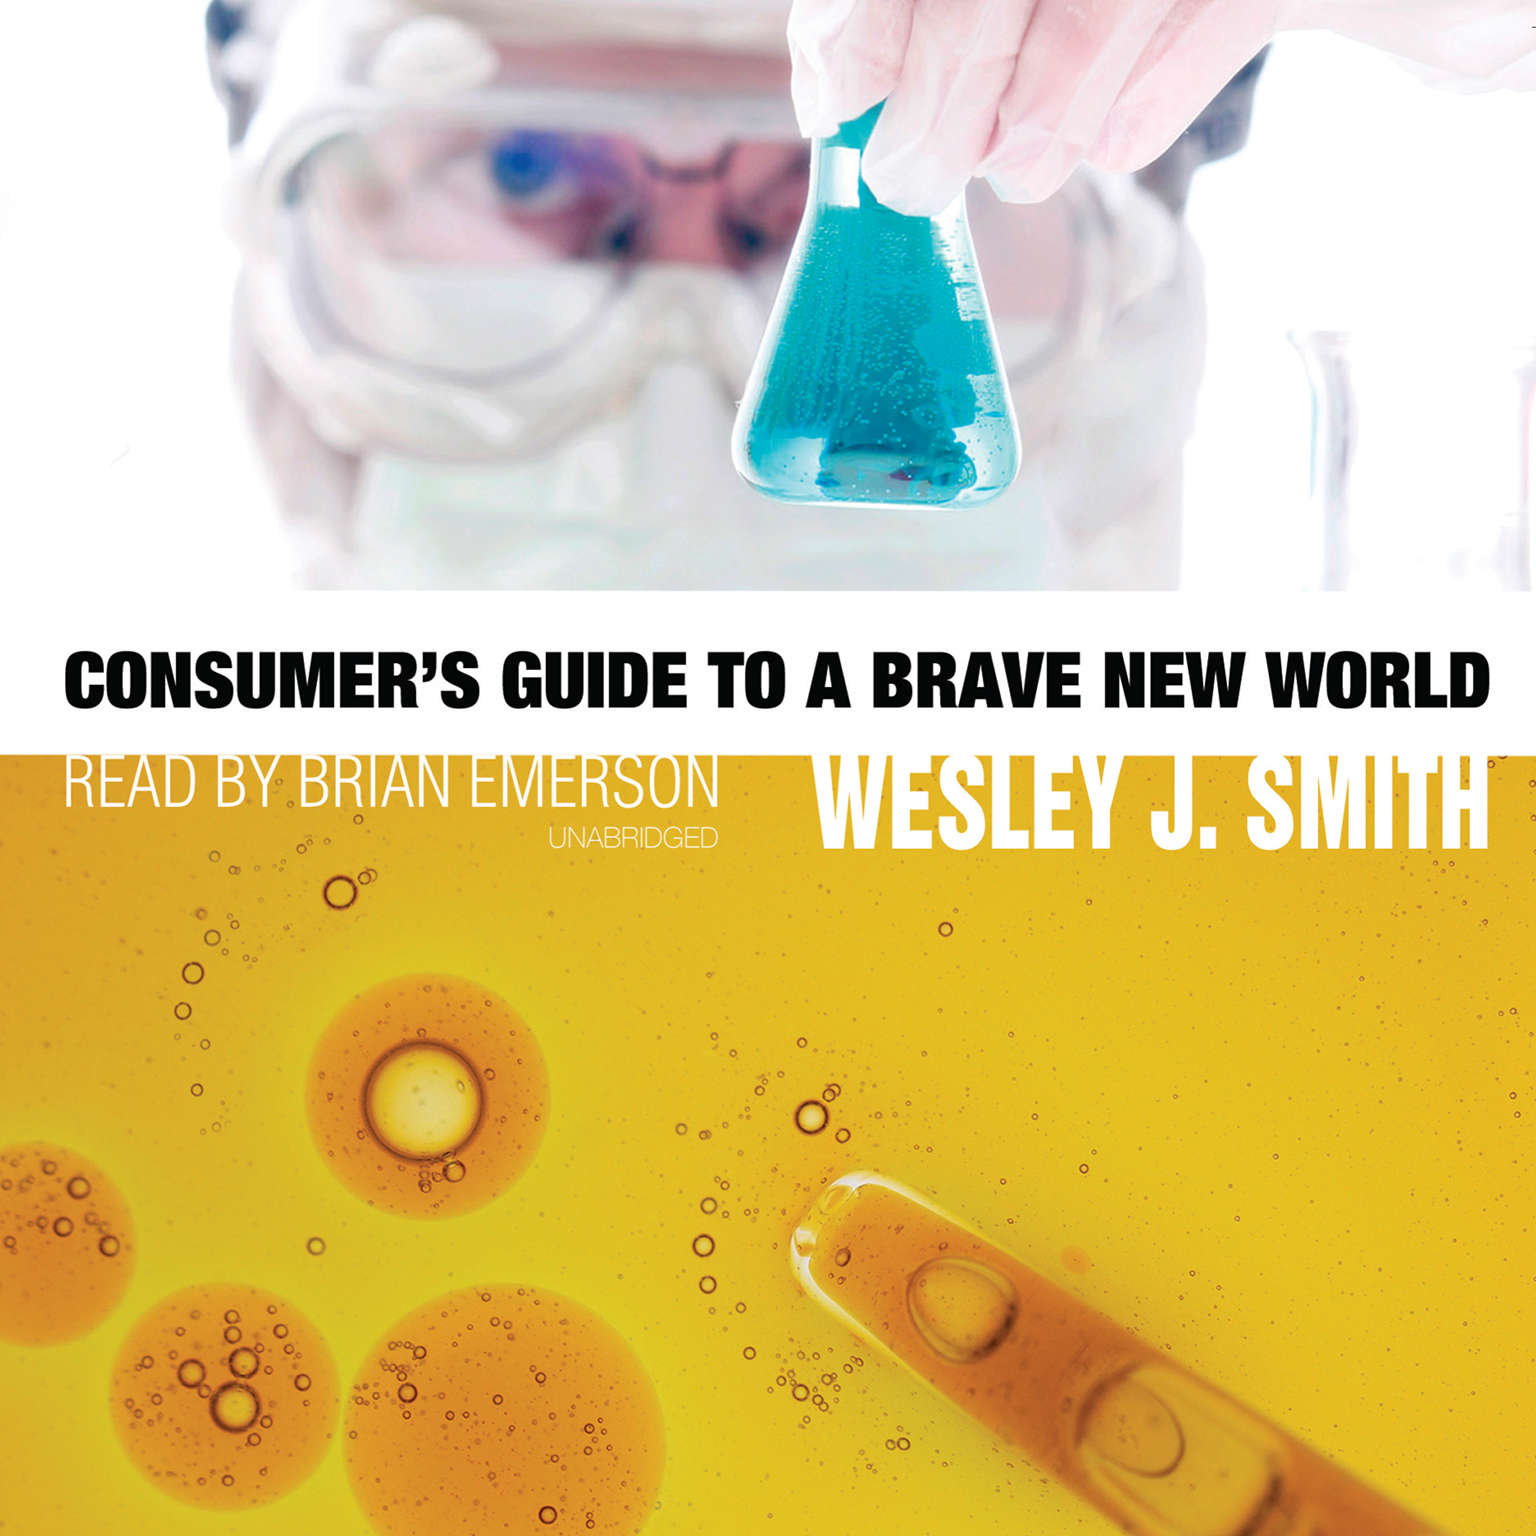 Consumer Guide Book: Consumer's Guide To A Brave New World - Audiobook